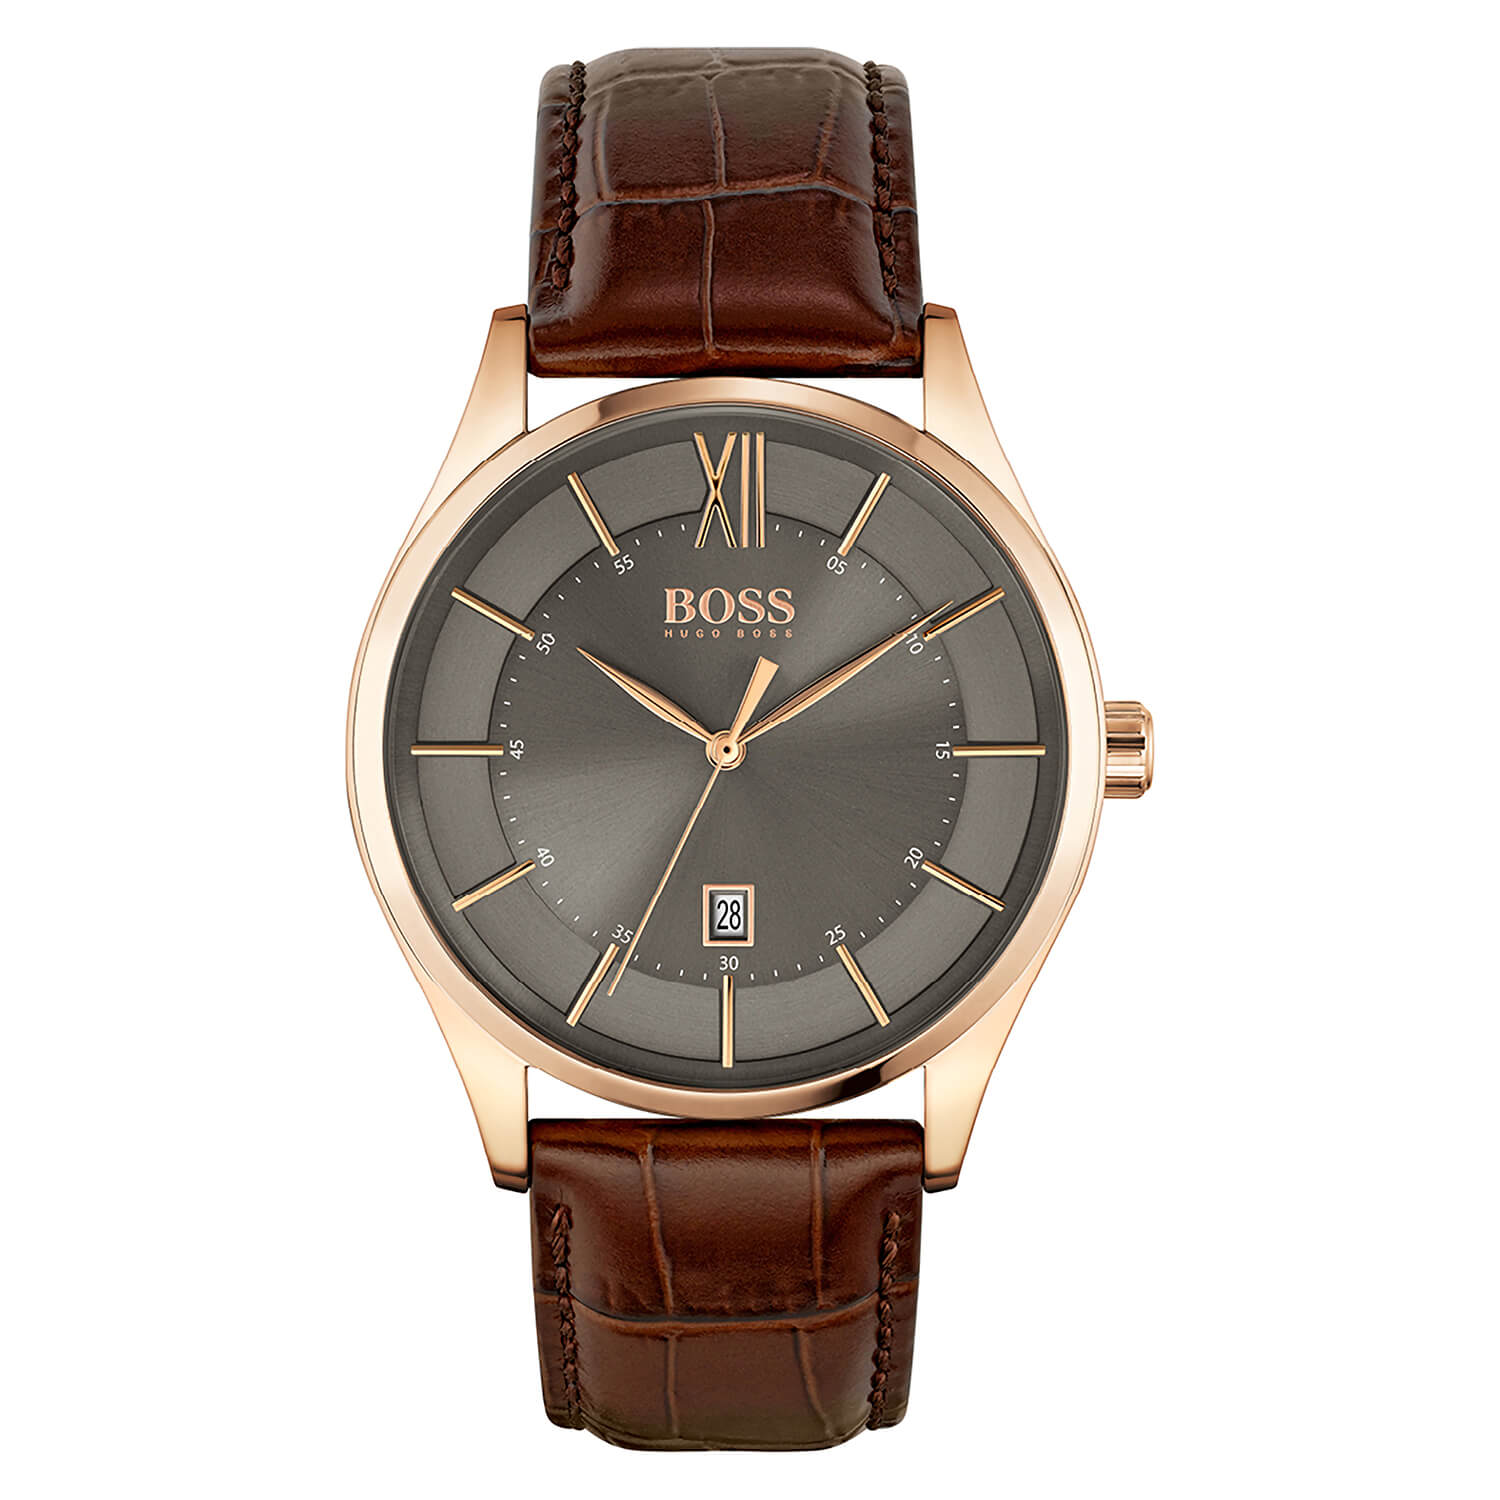 H.BOSS DISTINCTION GREY DATE FEATURE DIAL BROWN LEATHER STRAP